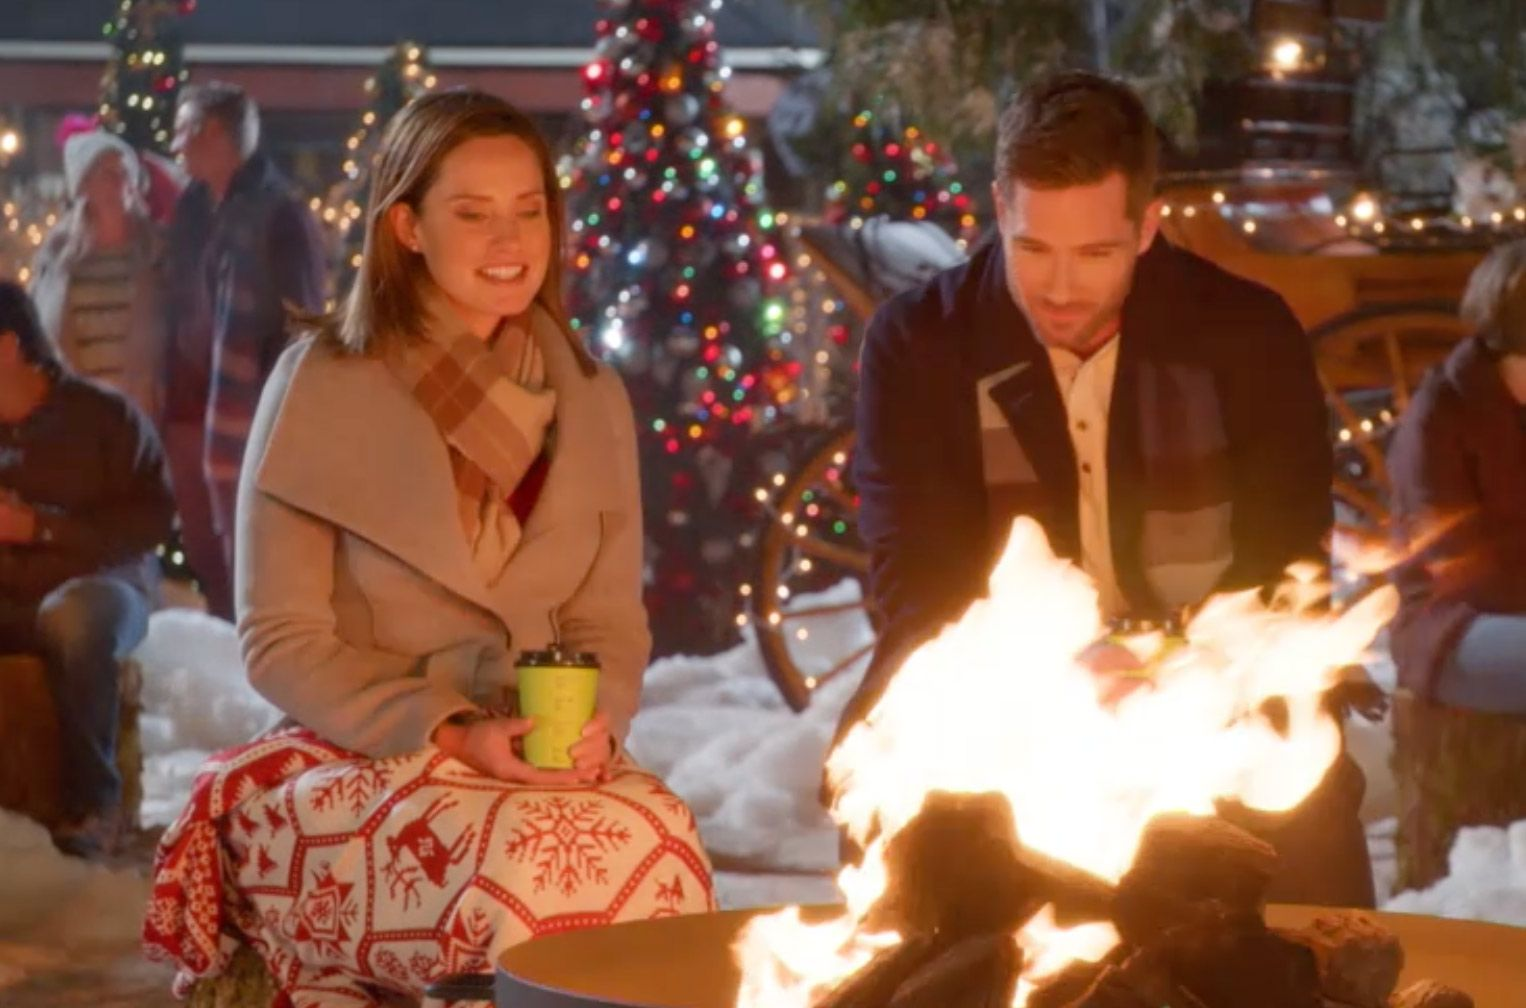 Experience Holiday Magic in Grapevine, The Christmas